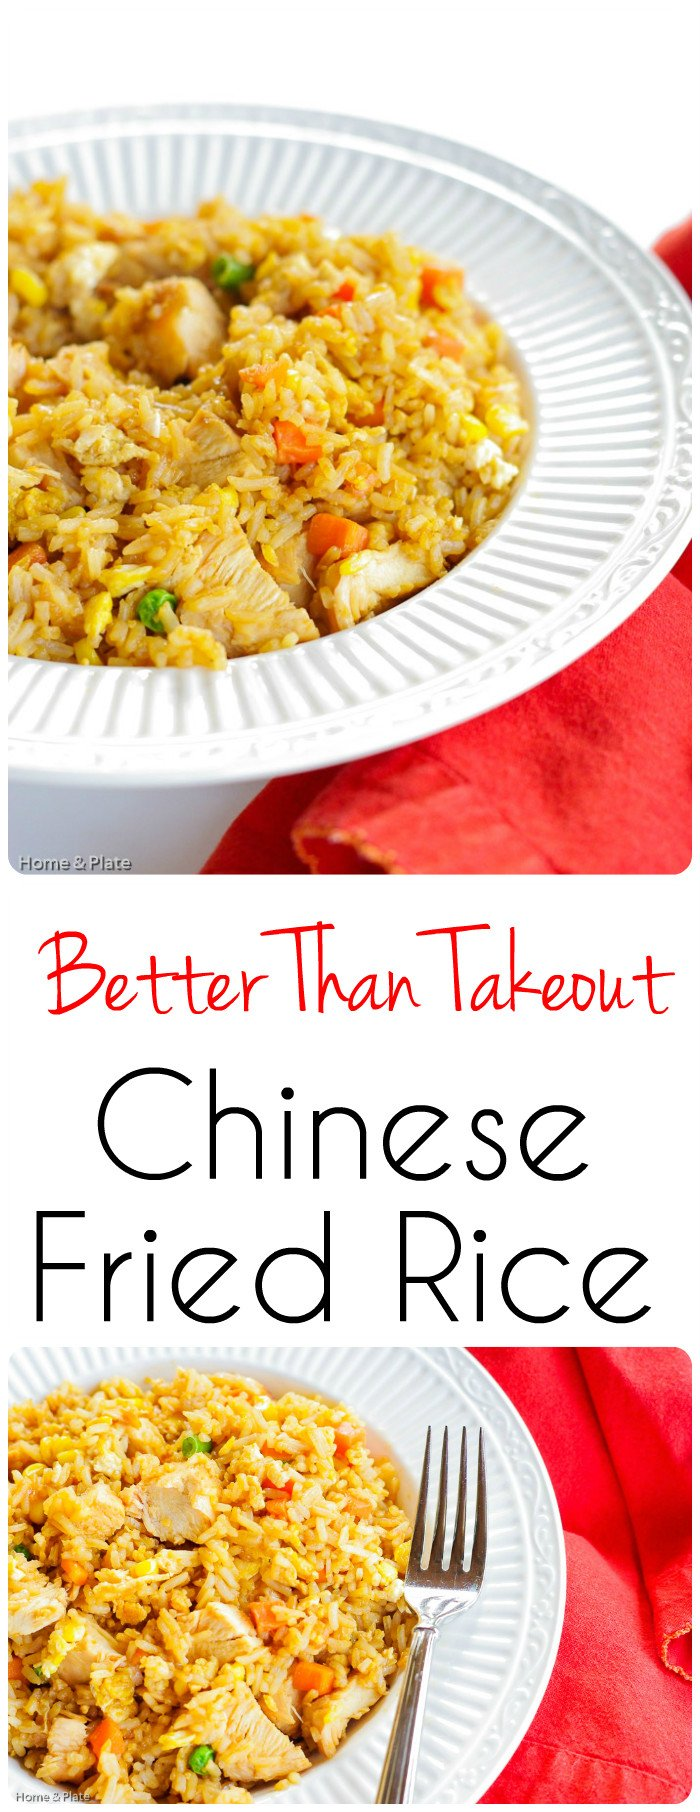 Better Than Takeout Chinese Fried Rice - My Better Than Takeout Chinese Fried Rice recipe uses 5 simple ingredients in one dish that packs protein and veggie goodness all in one.